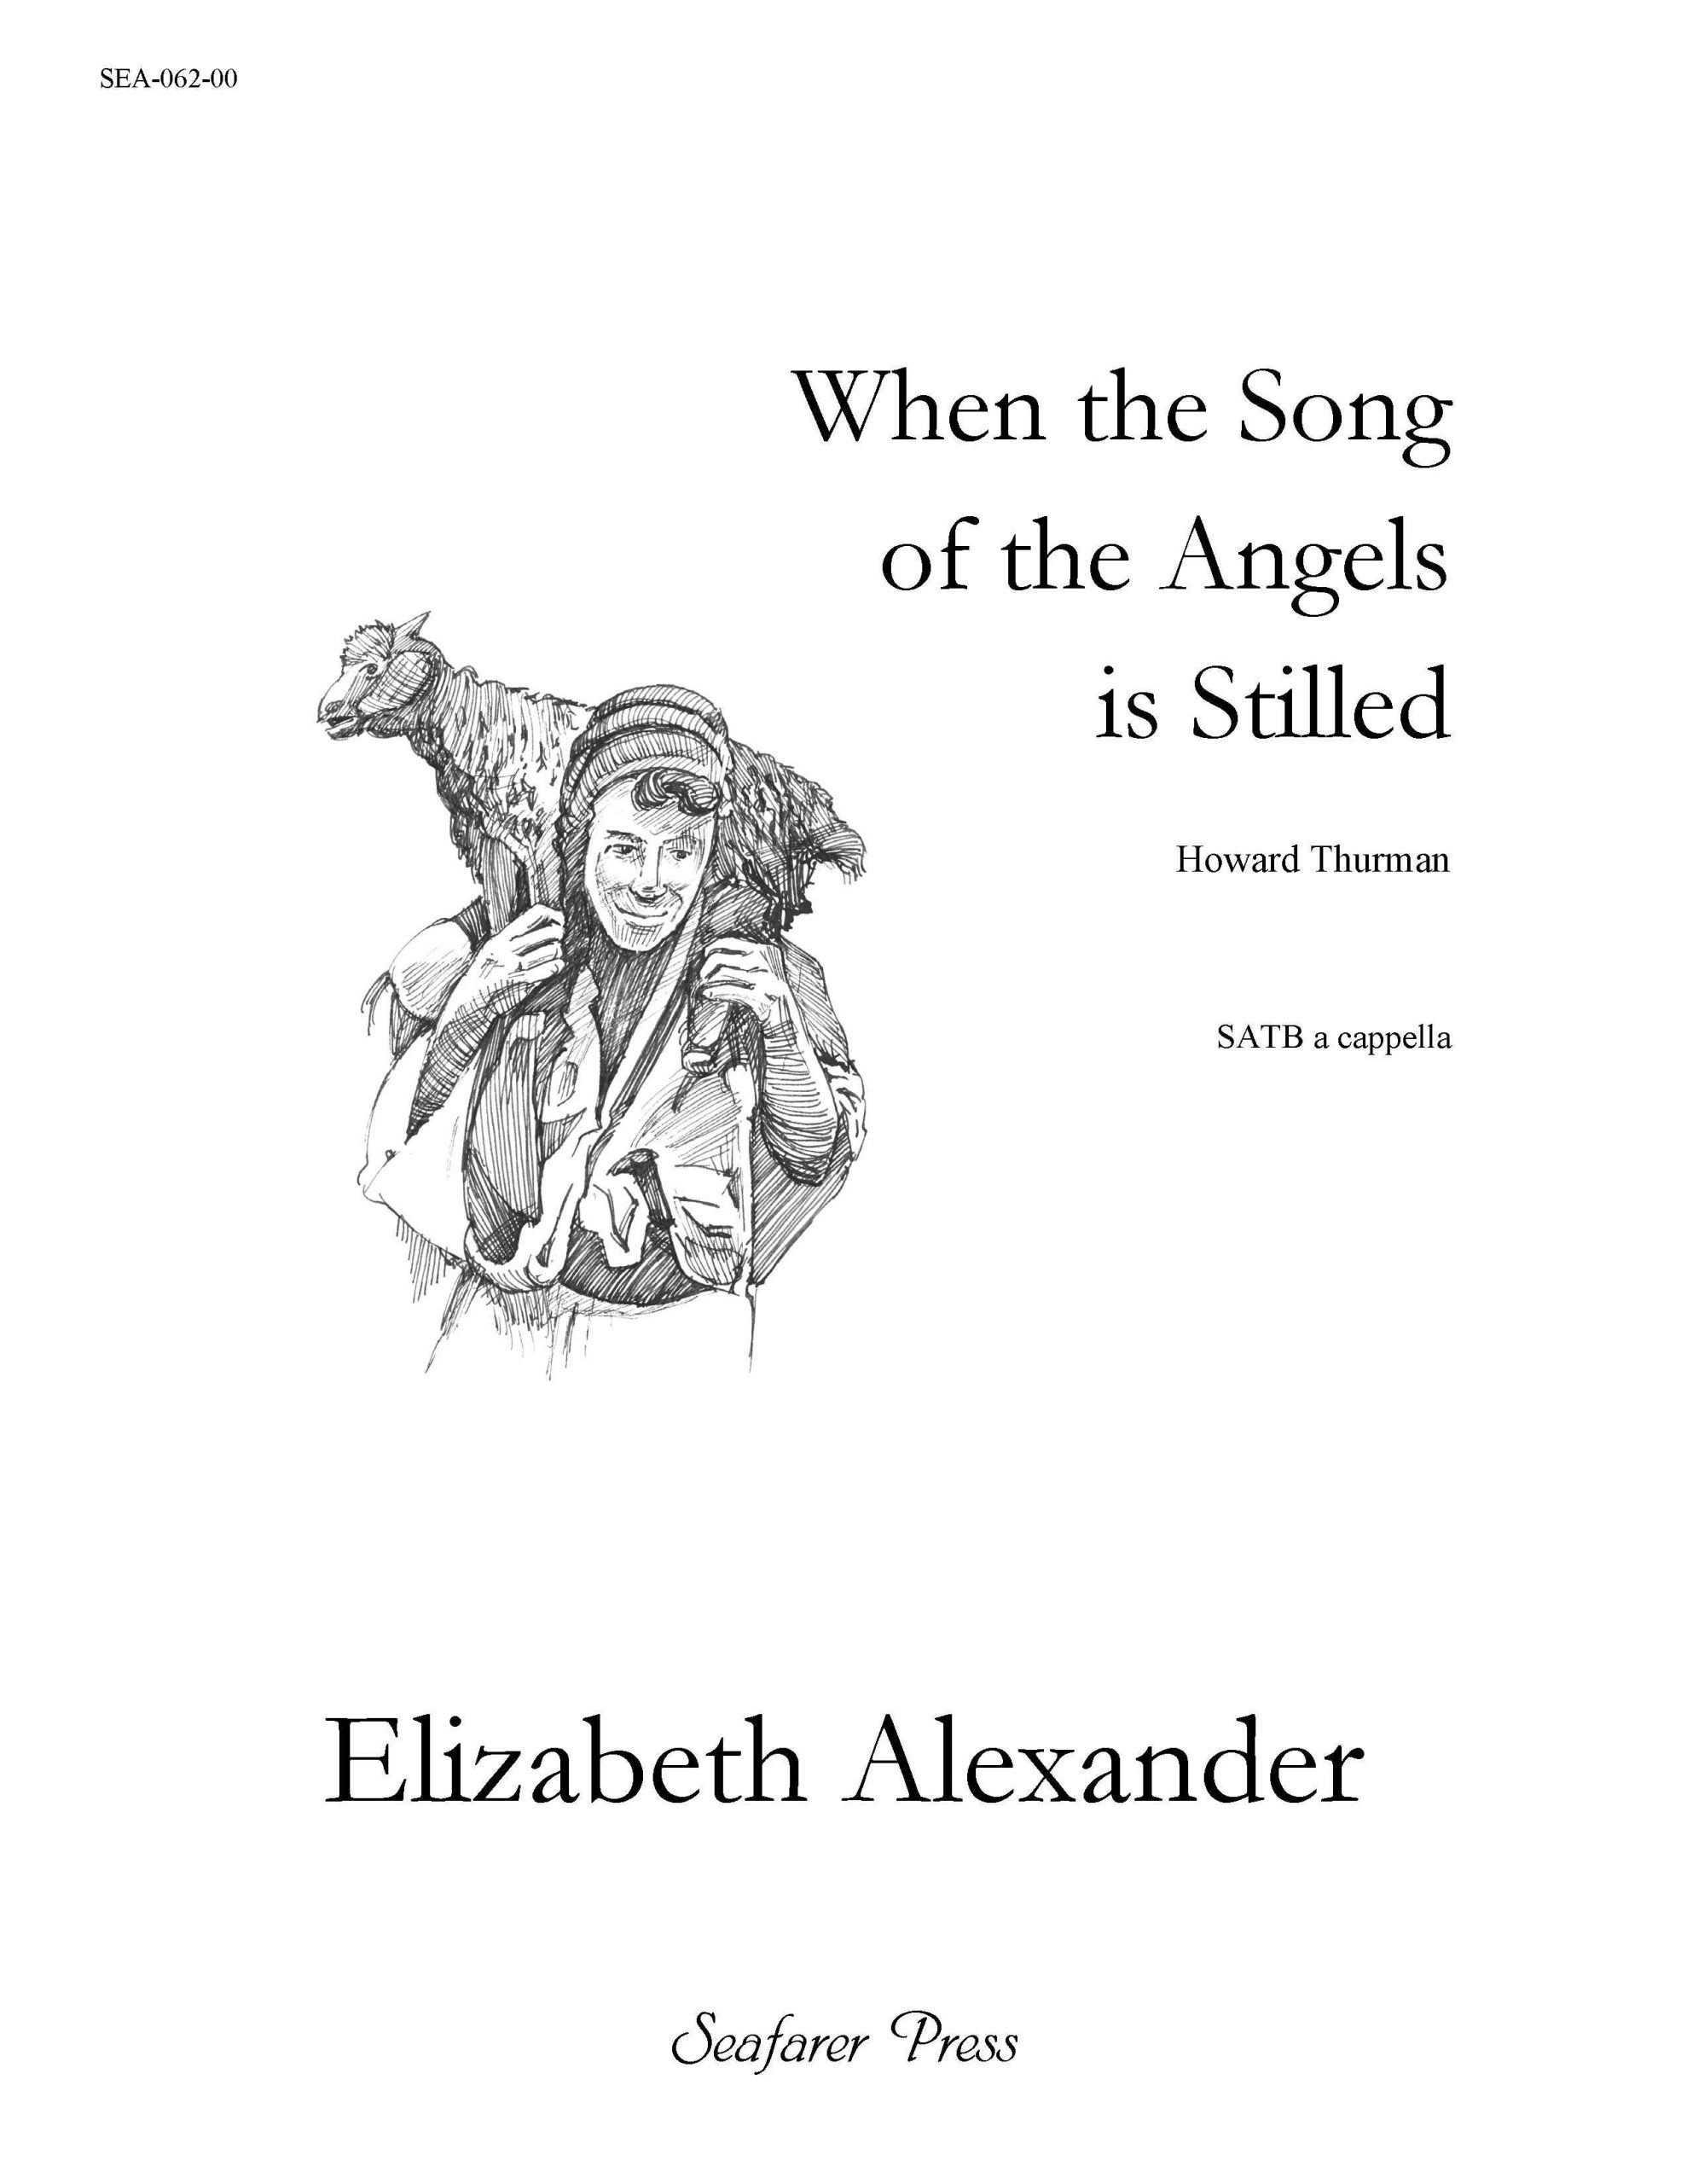 SEA-062-00 - When the Song of the Angels Is Stilled